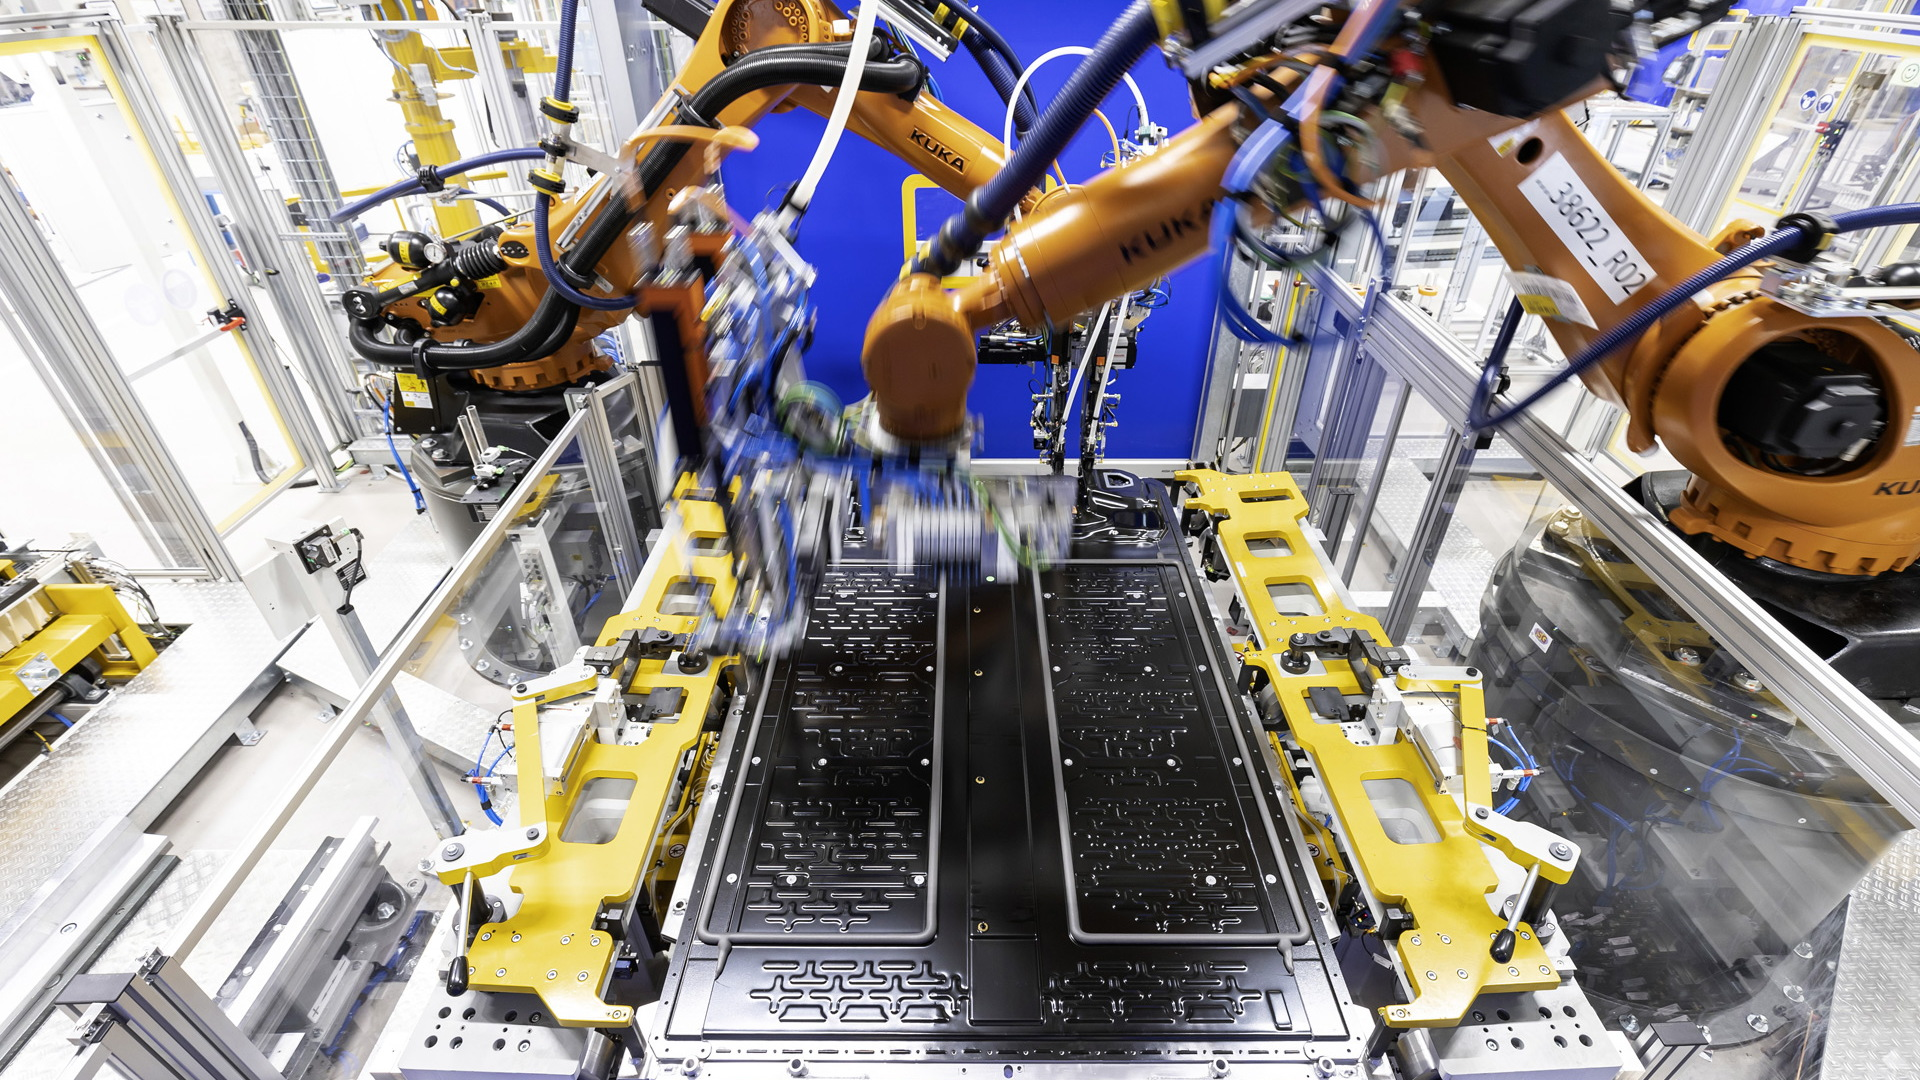 Battery production at Mercedes-Benz's plant in Hedelfingen, Germany